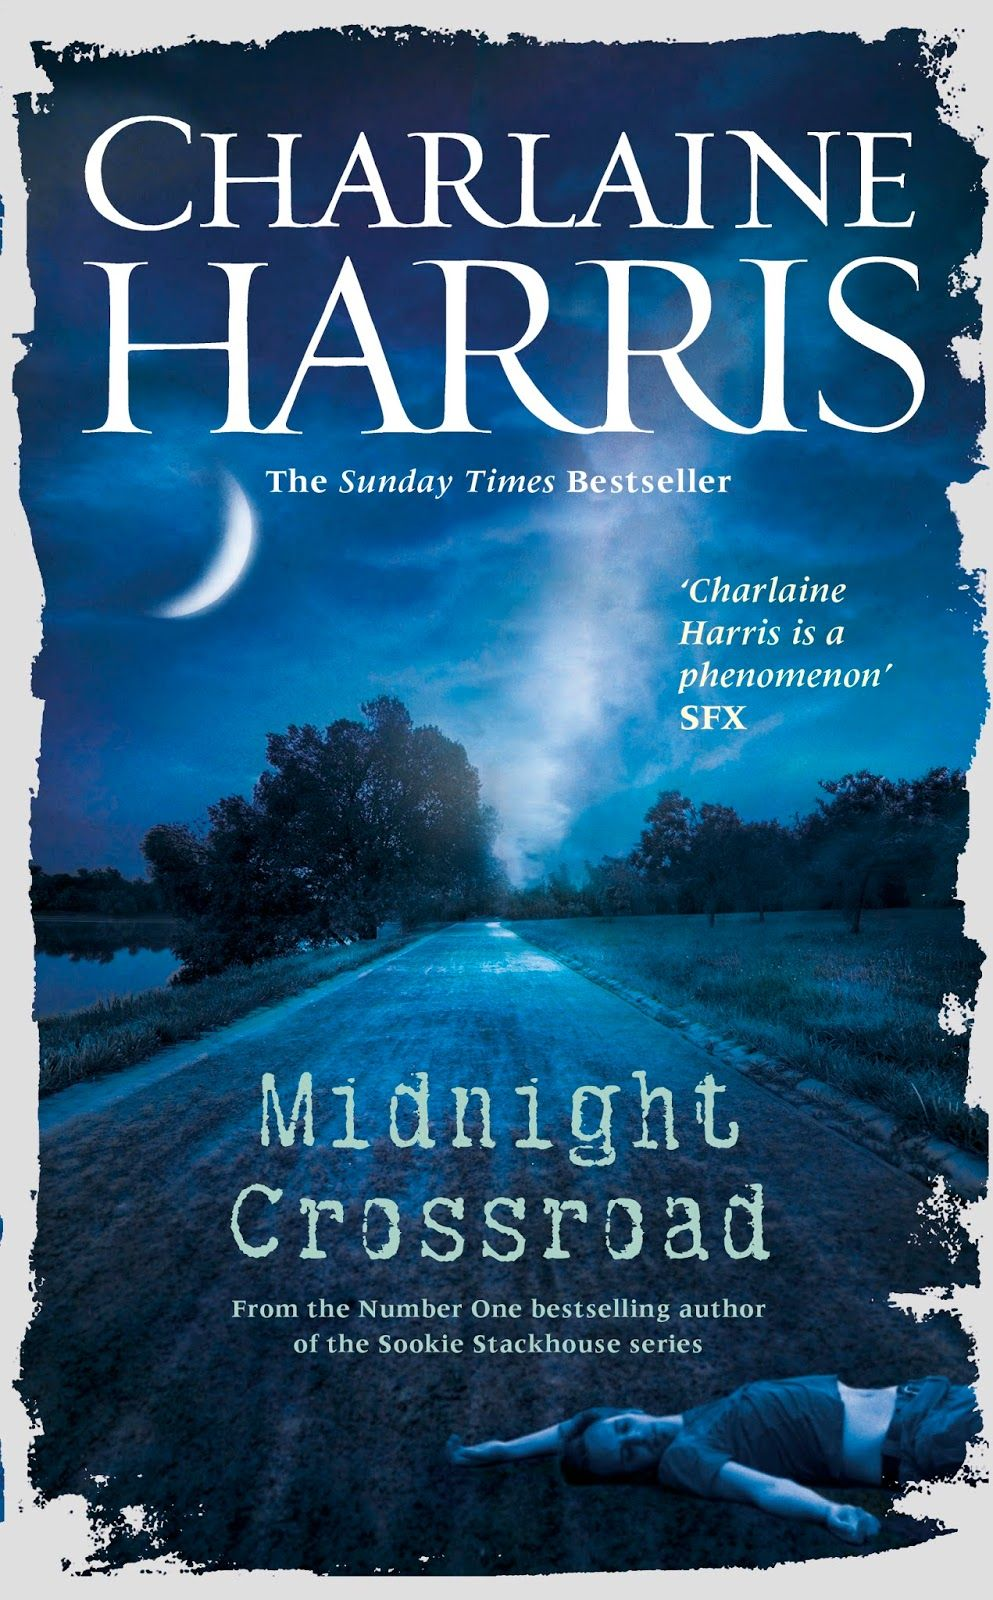 Charlaine Harris Libros Midnight Crossroad By Charlaine Harris Books And Book Stuff